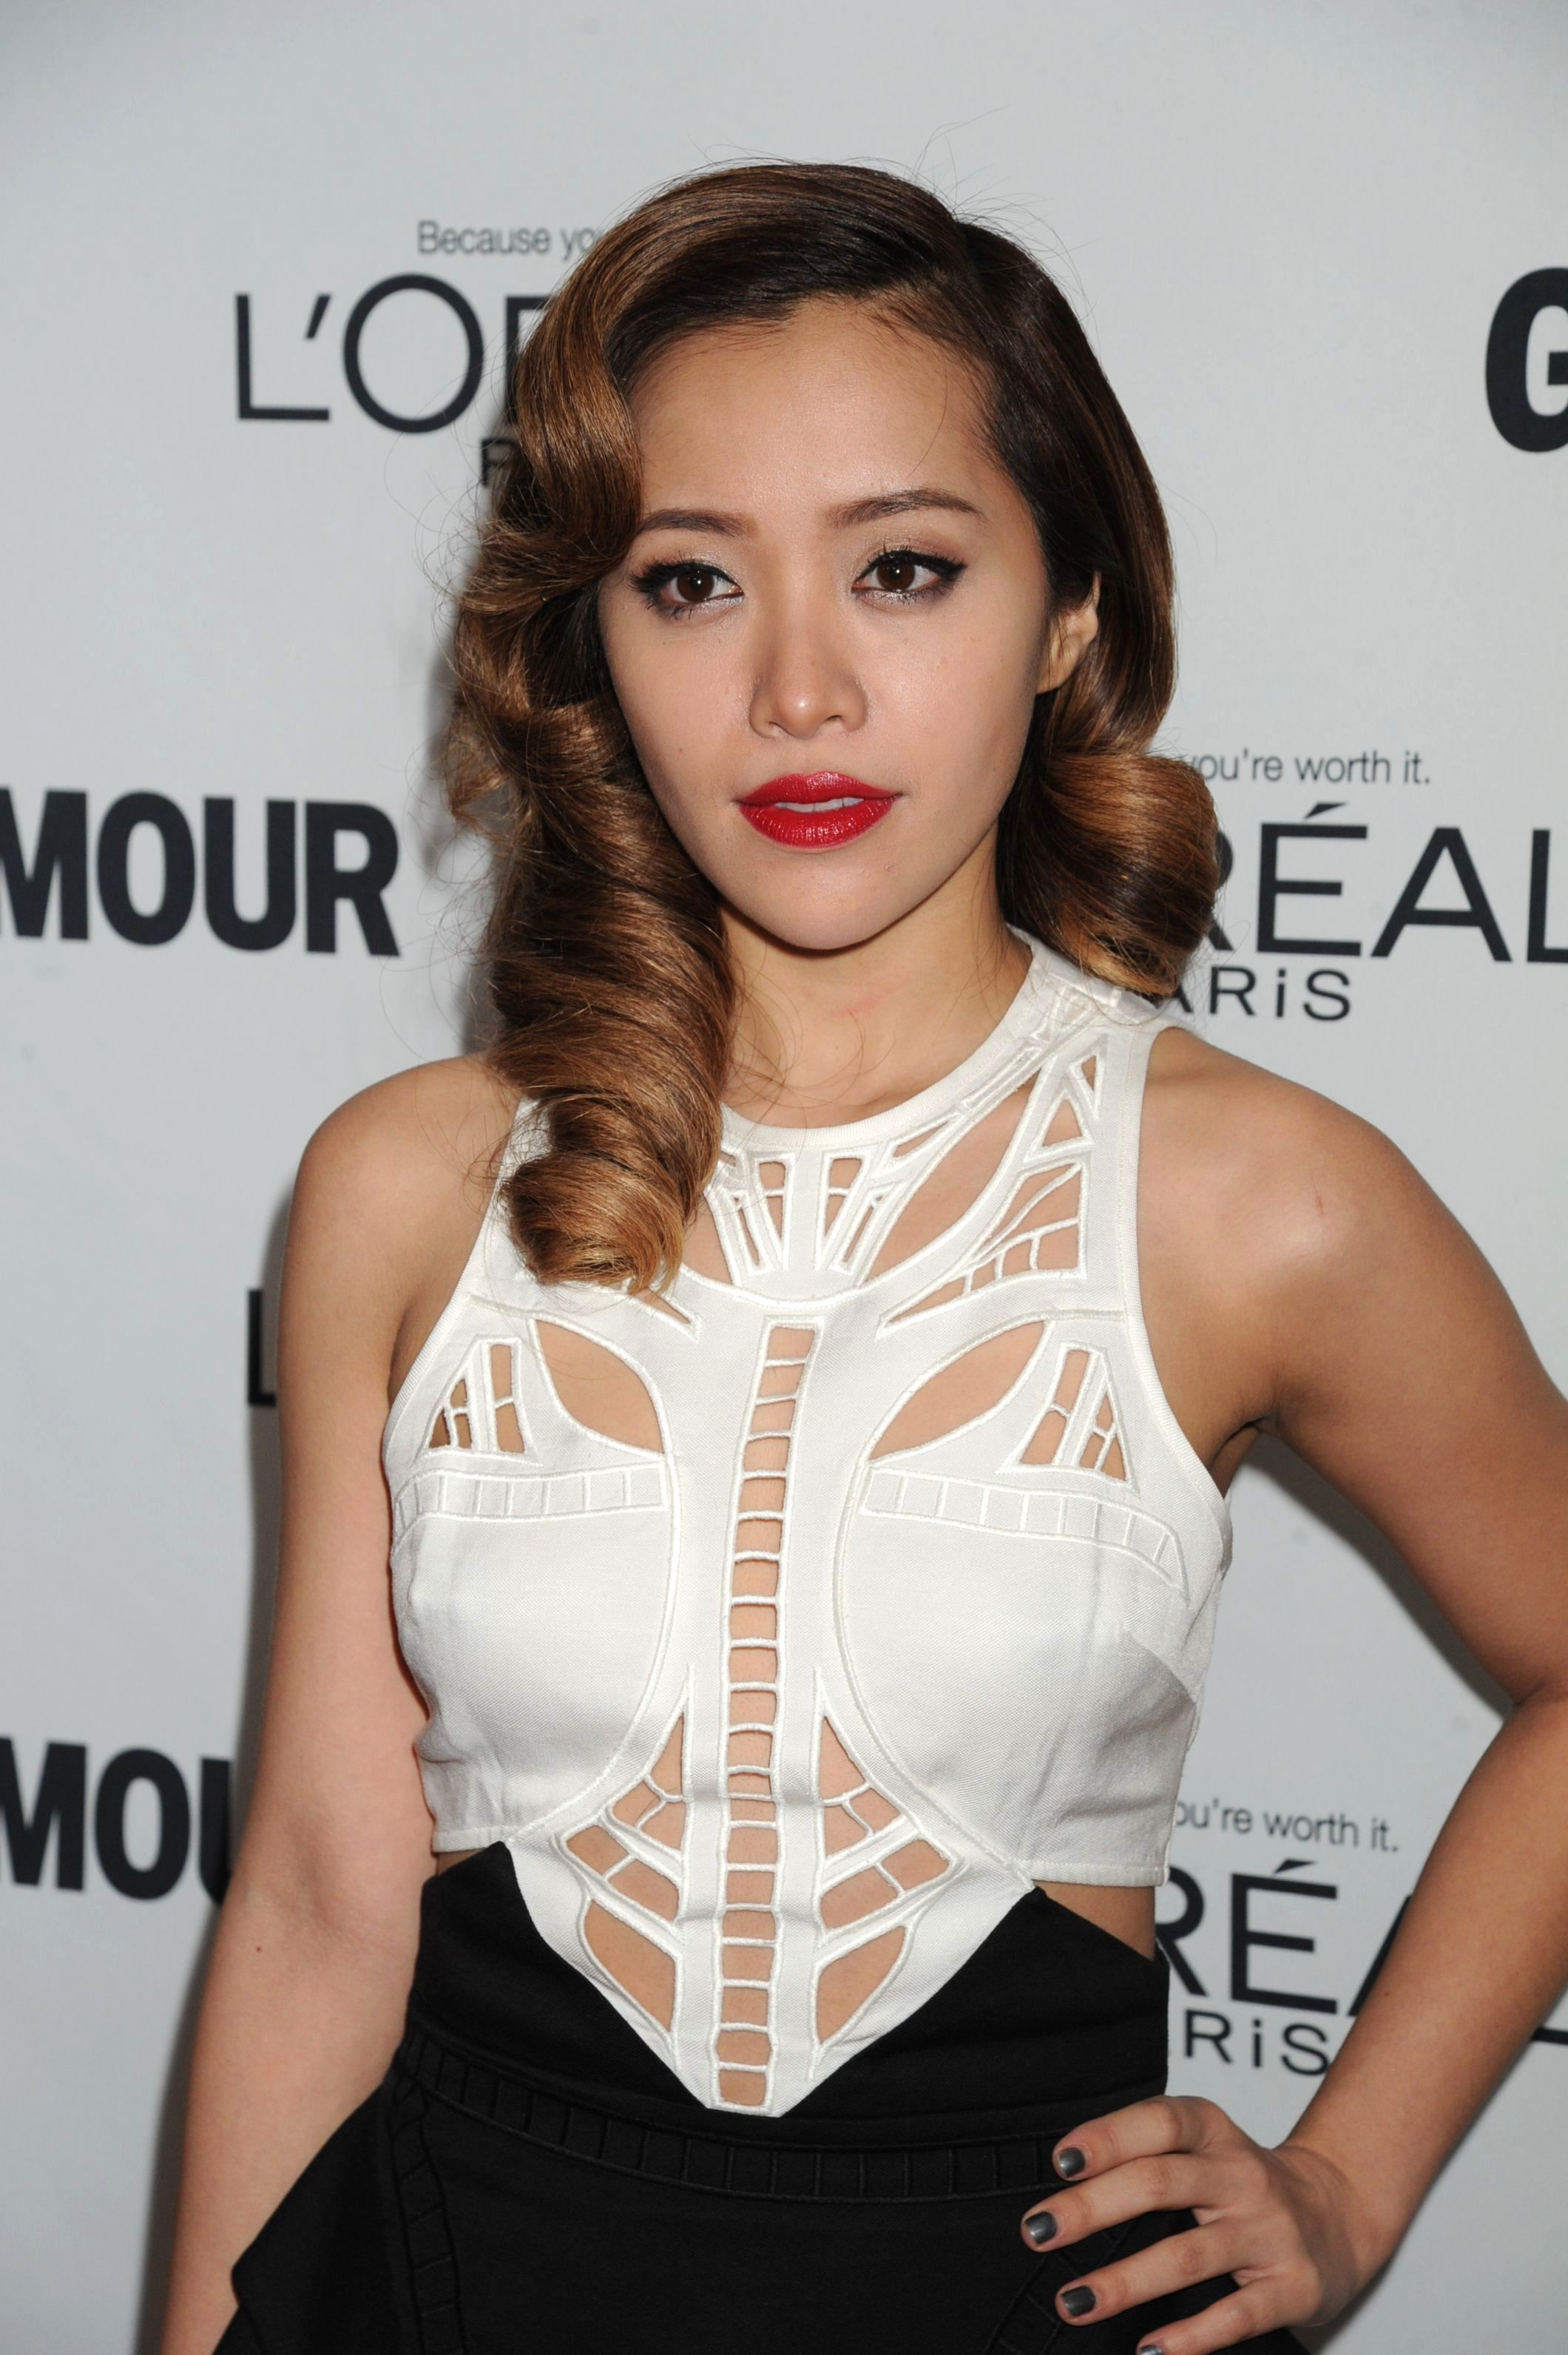 Michelle Phan attends the Glamour Women of the Year Awards in New York on Nov. 11, 2013.